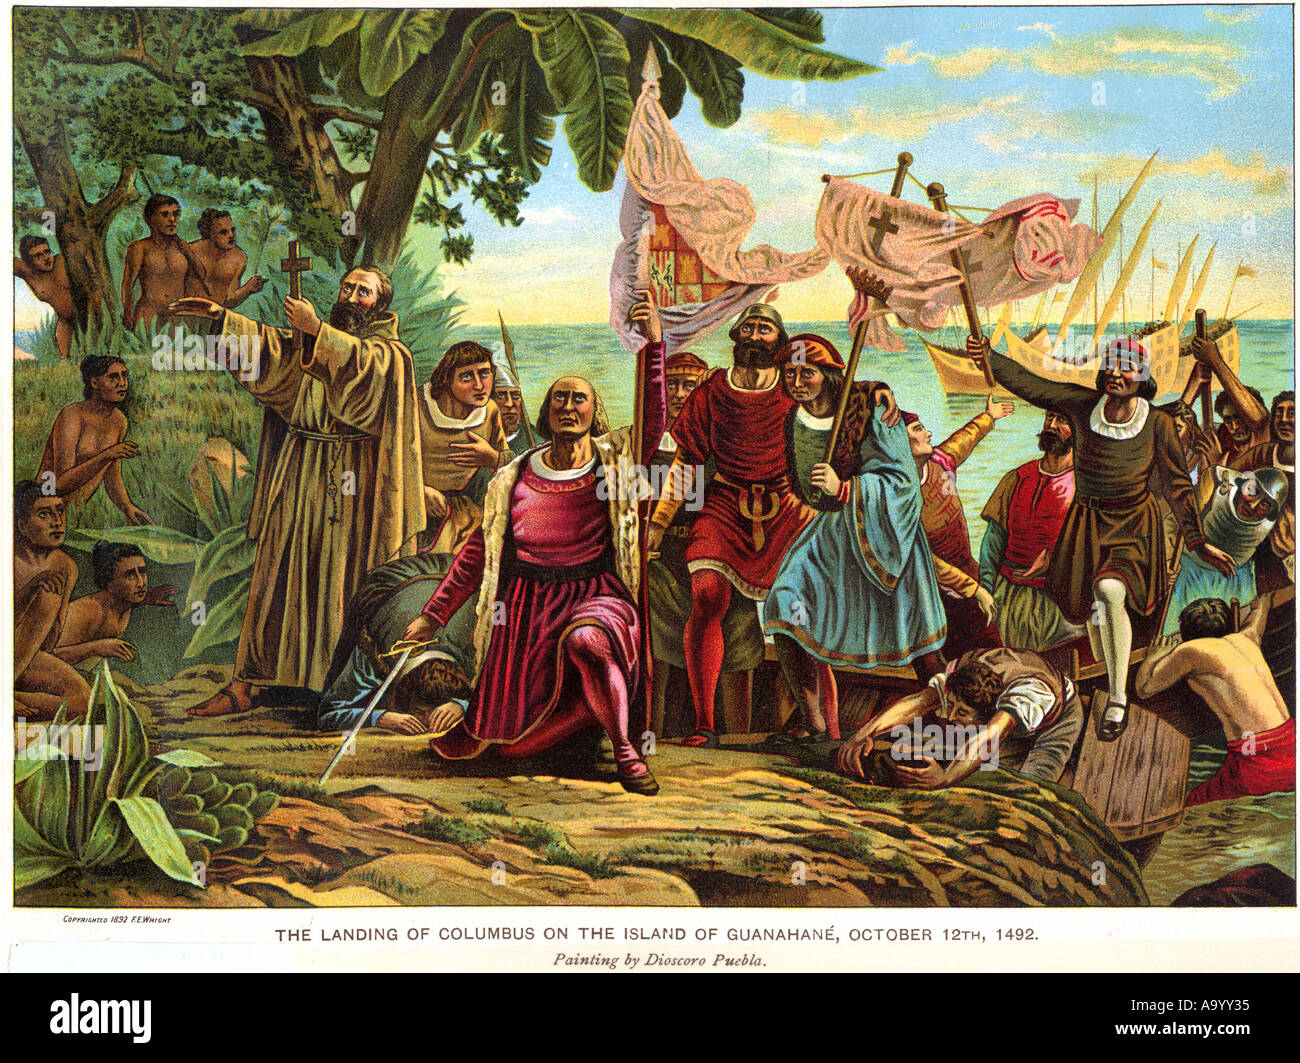 Landing of Columbus expedition on the island of Guanahani in 1492. Color  lithograph